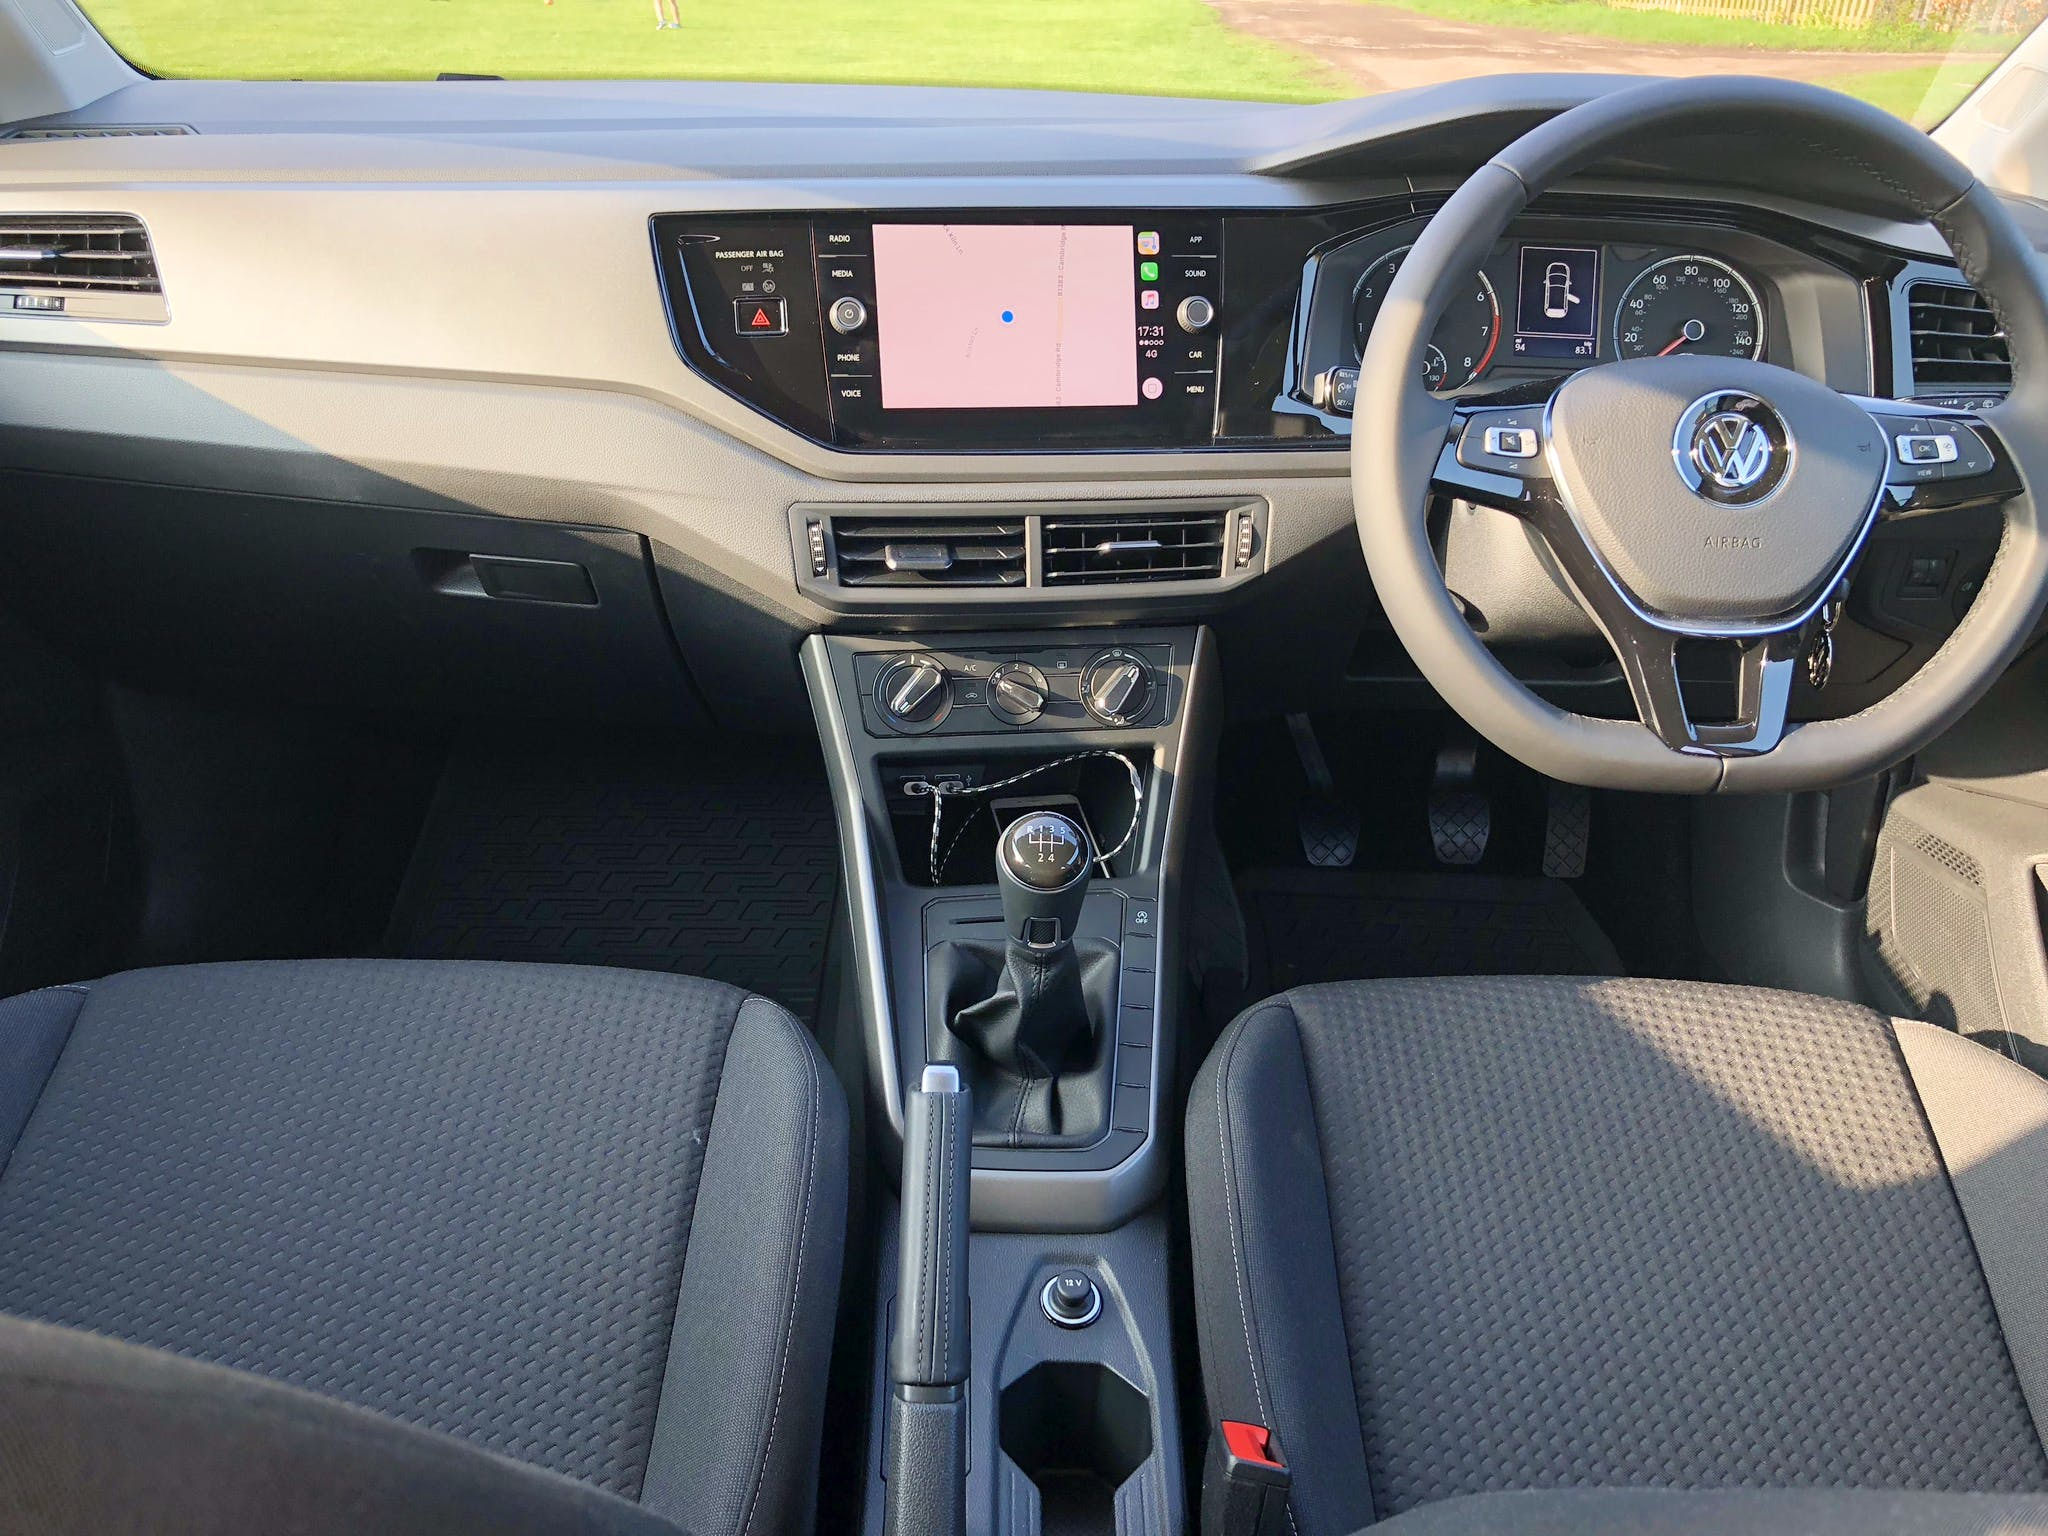 Volkswagen Polo with Audio/iPod input